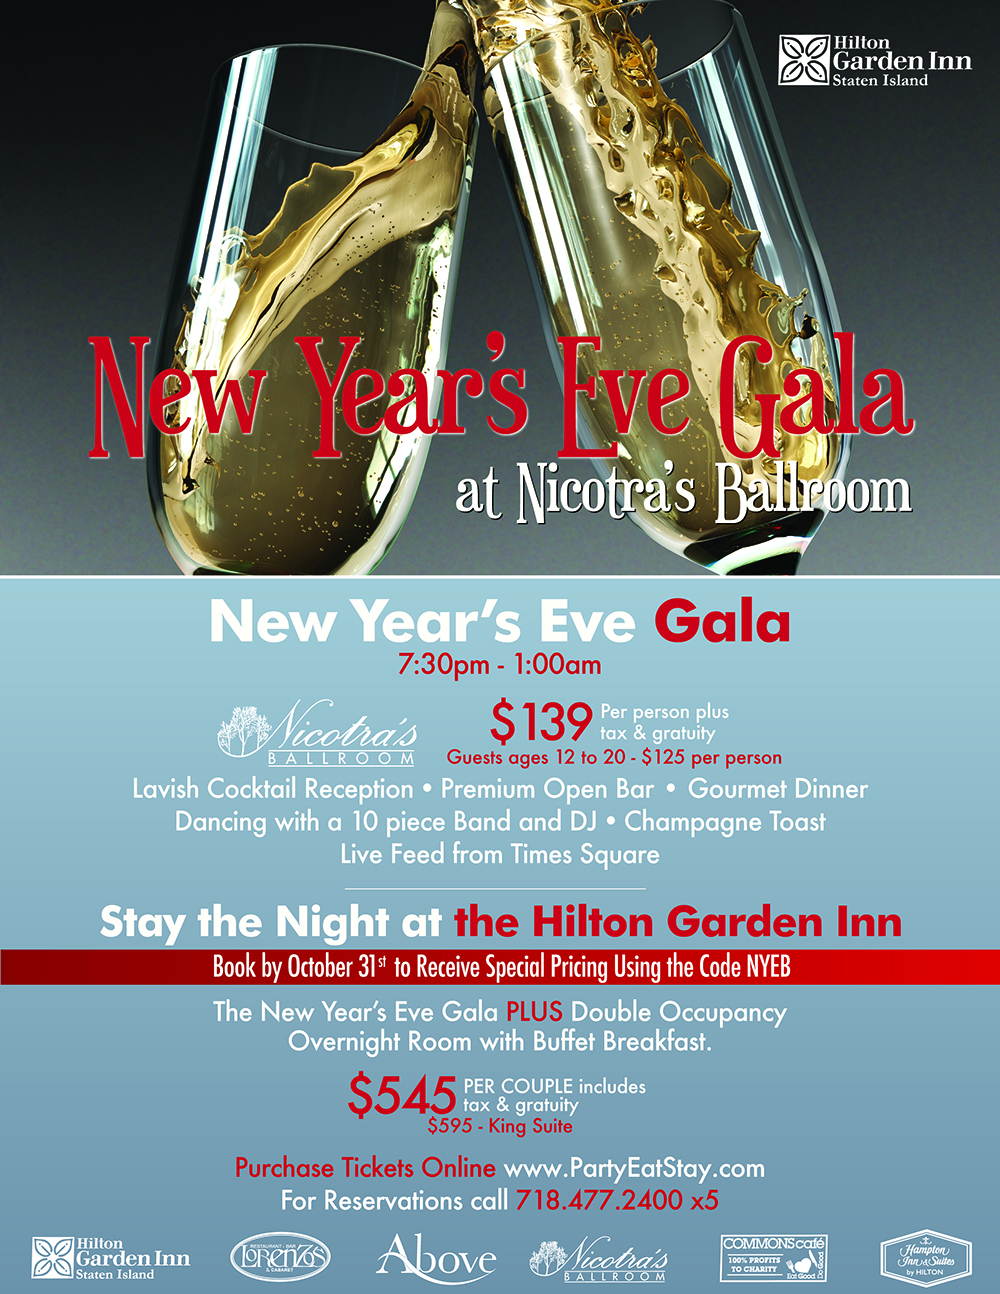 New Year's Eve Gala at Nicotras Ballroom